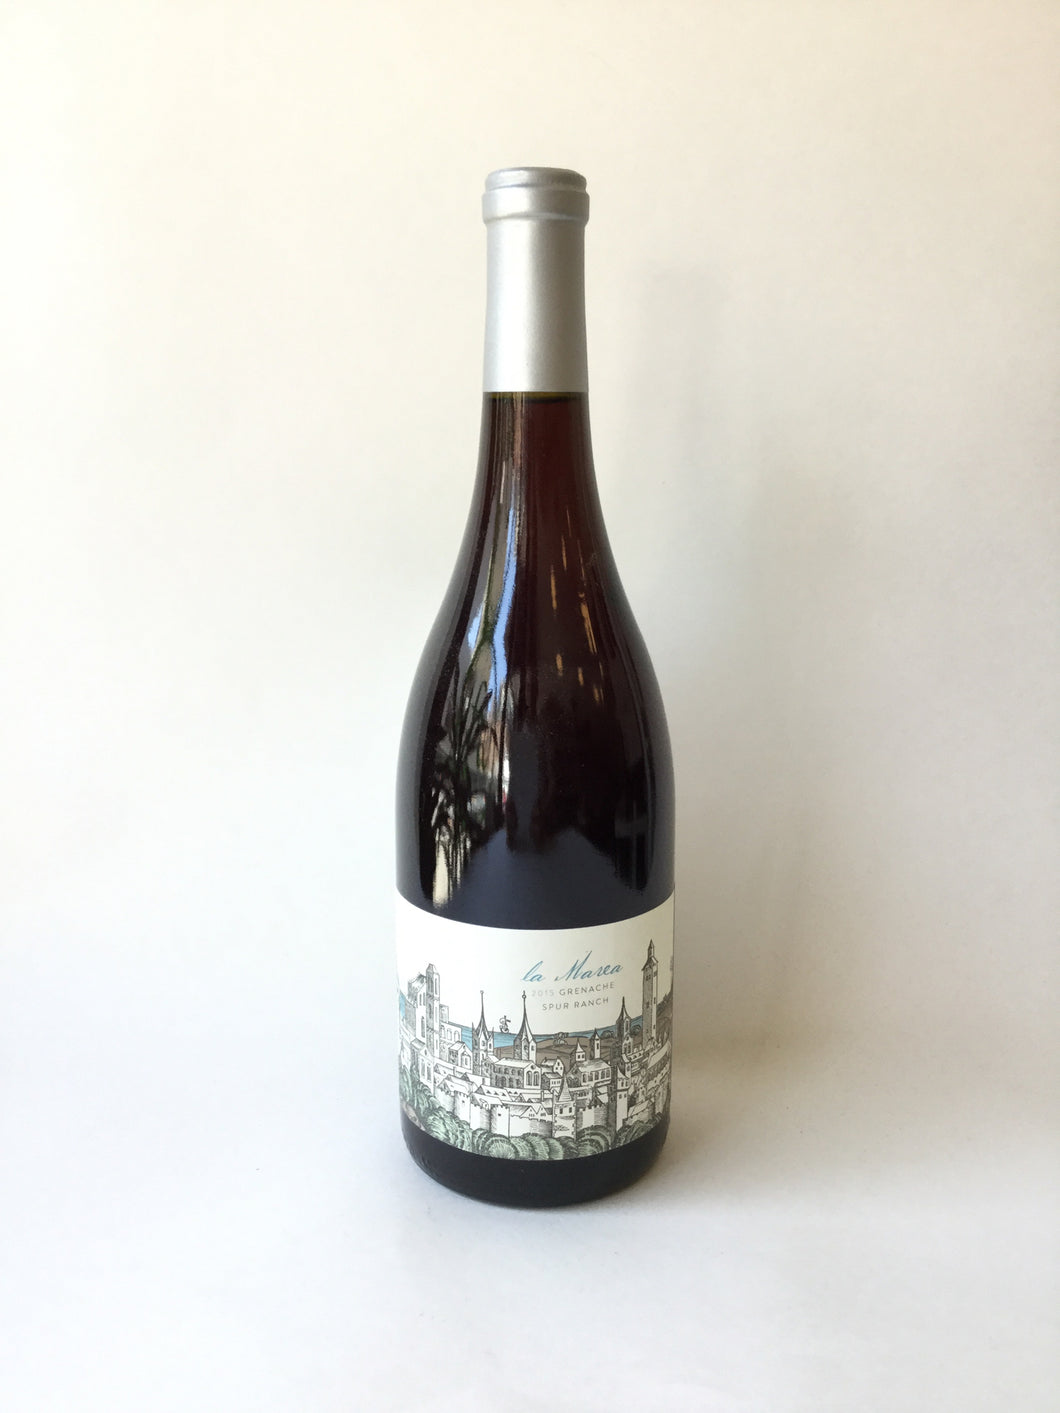 La Marea Grenache 'Spur Ranch' 2015, 750ml - Frankly Wines